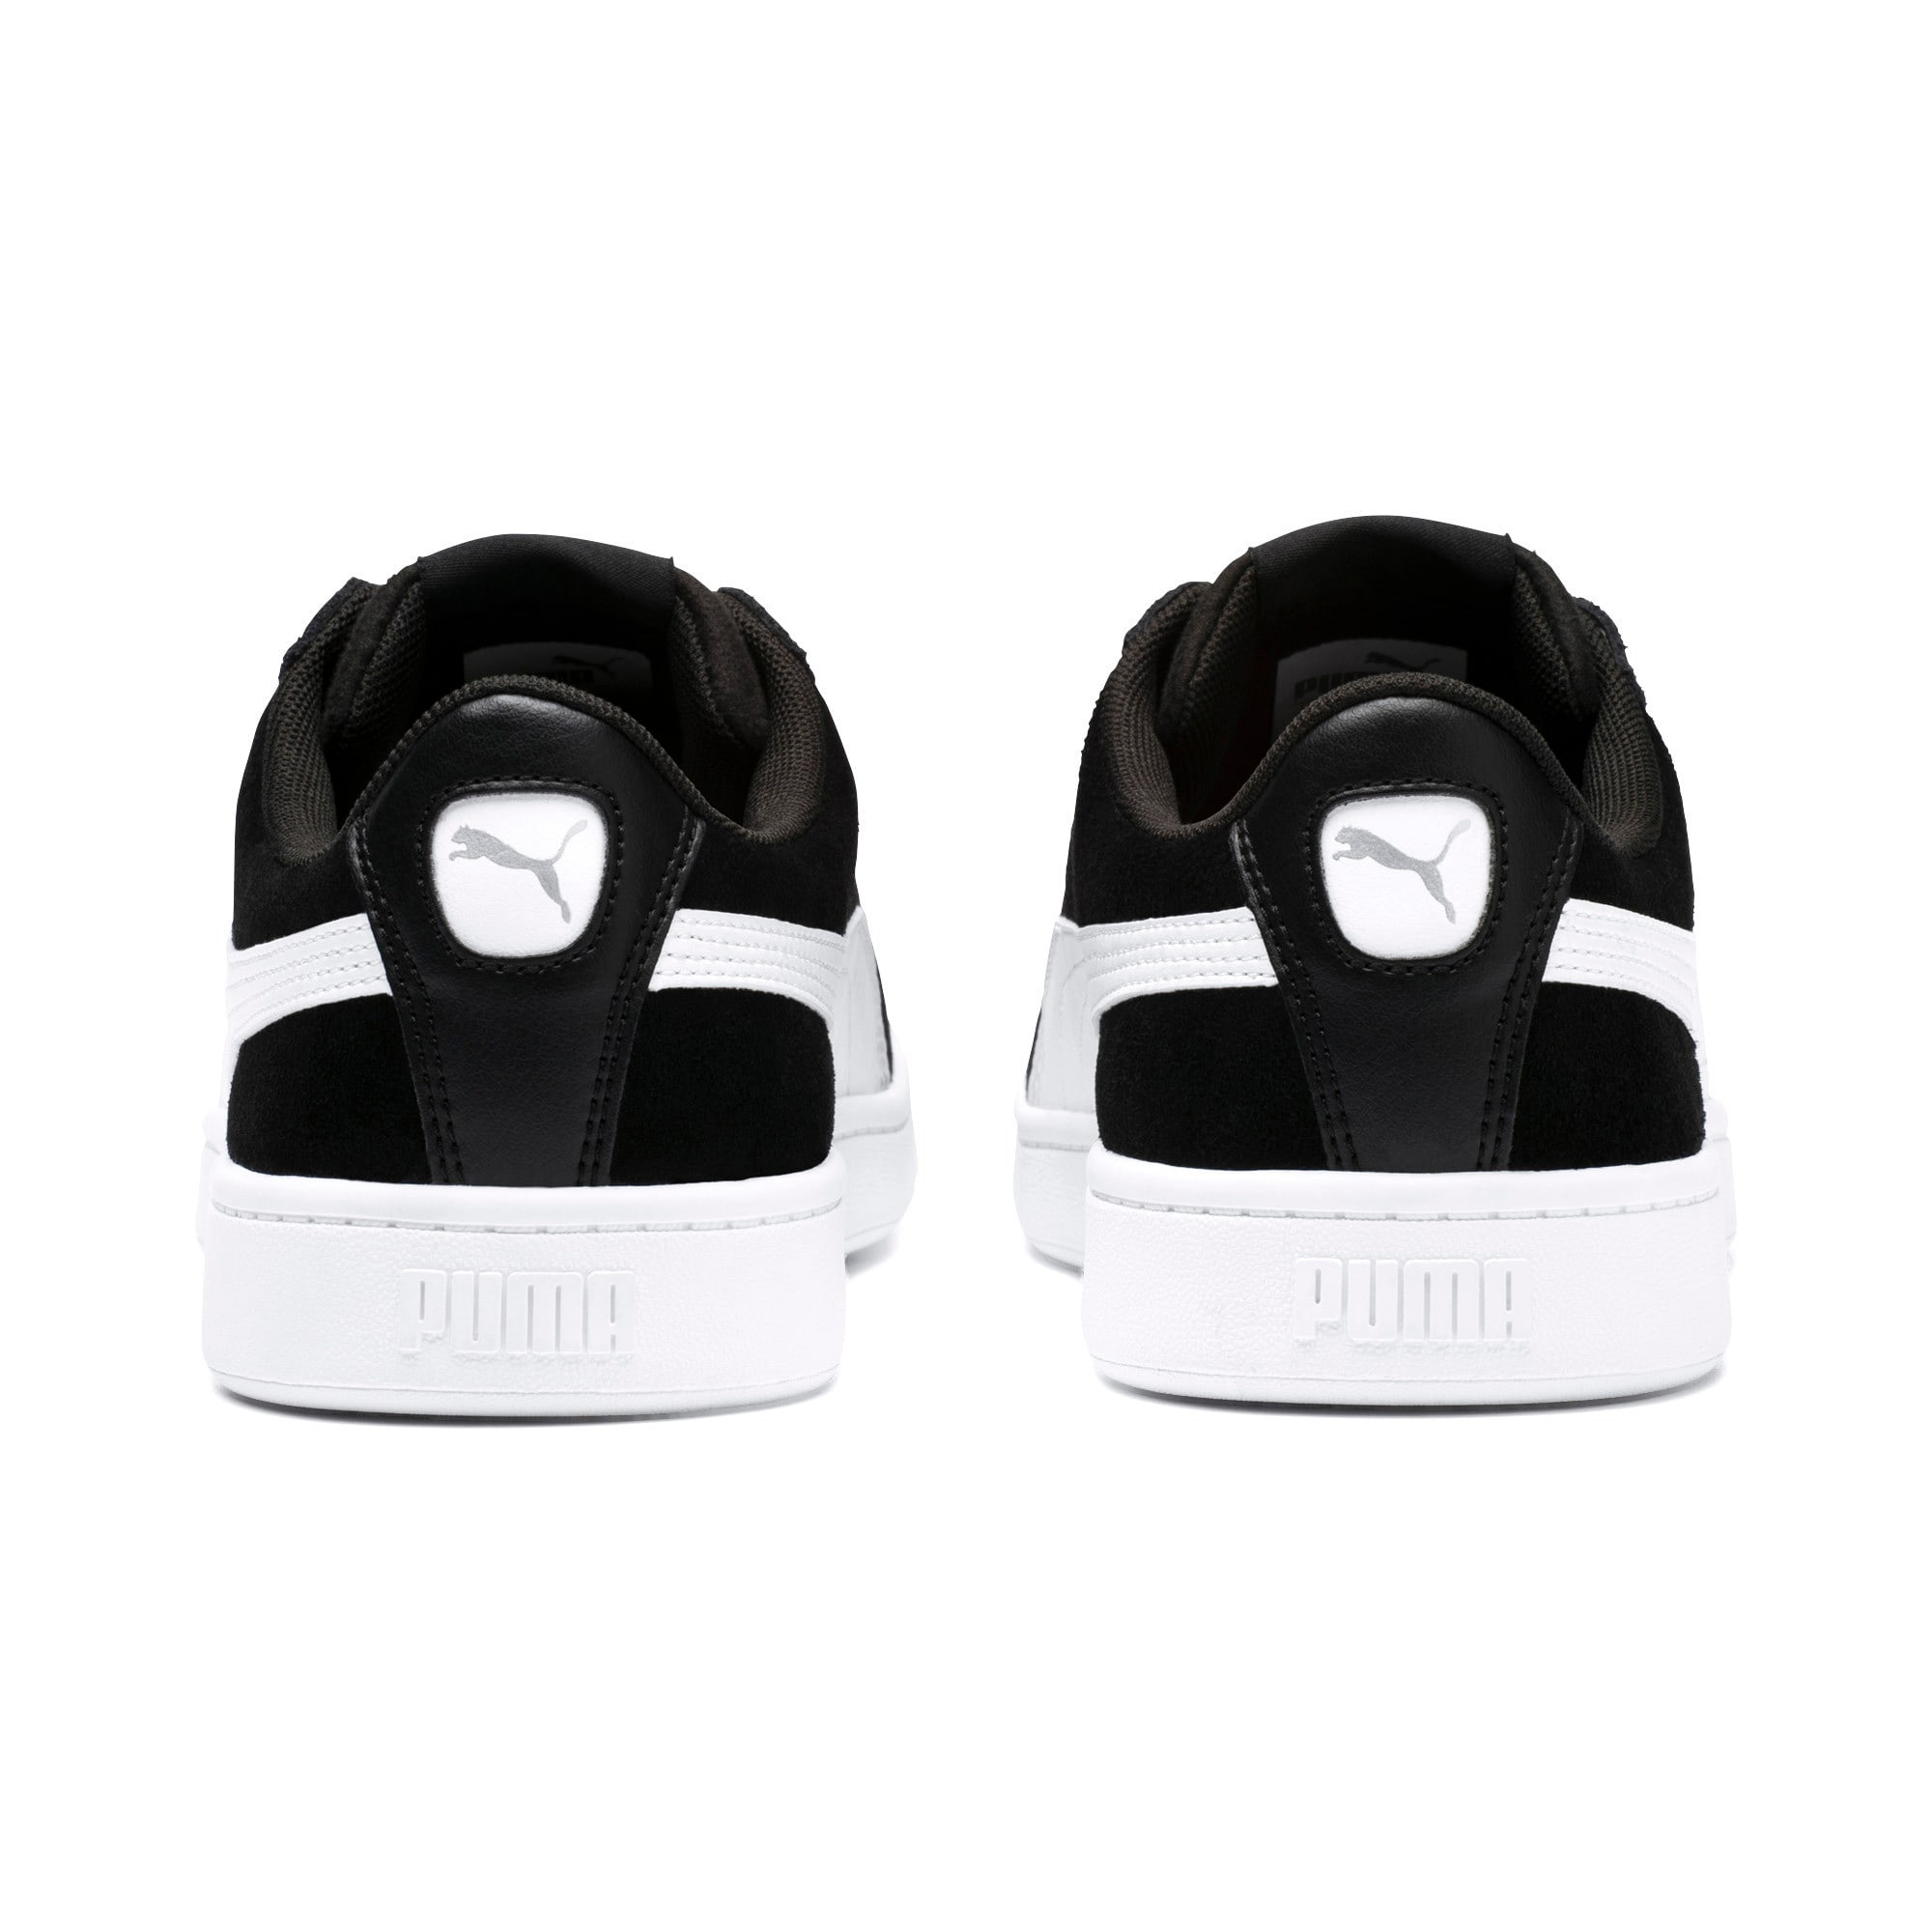 Thumbnail 3 of PUMA Vikky v2 Women's Sneakers, Puma Black-Puma White-Silver, medium